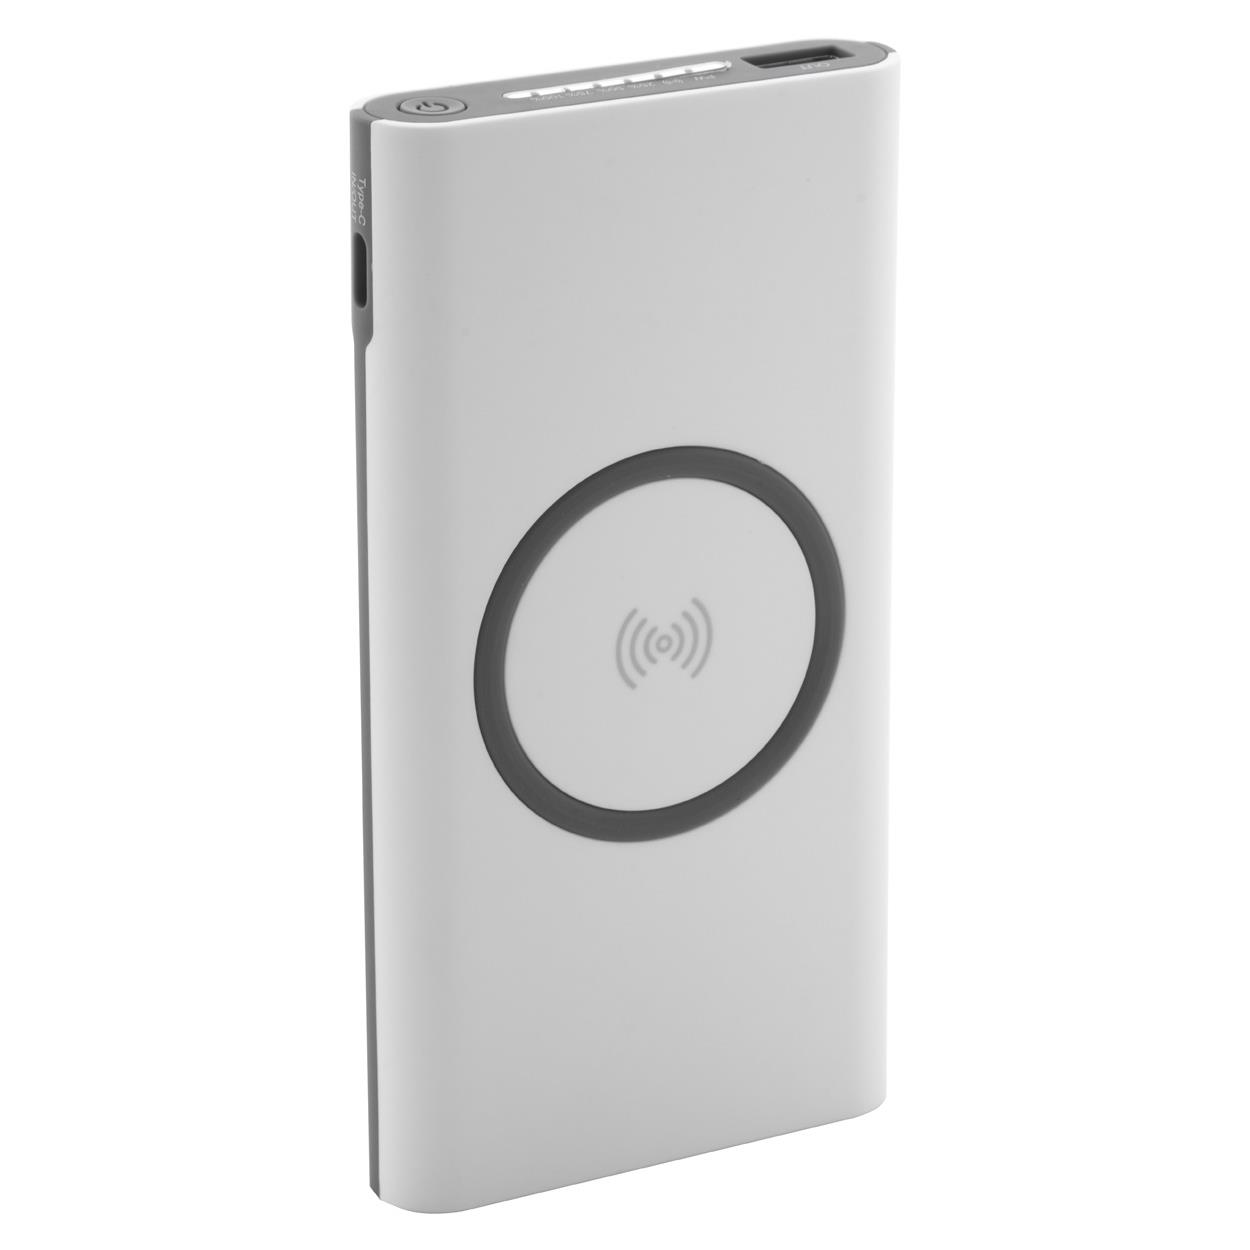 Quizet Powerbank